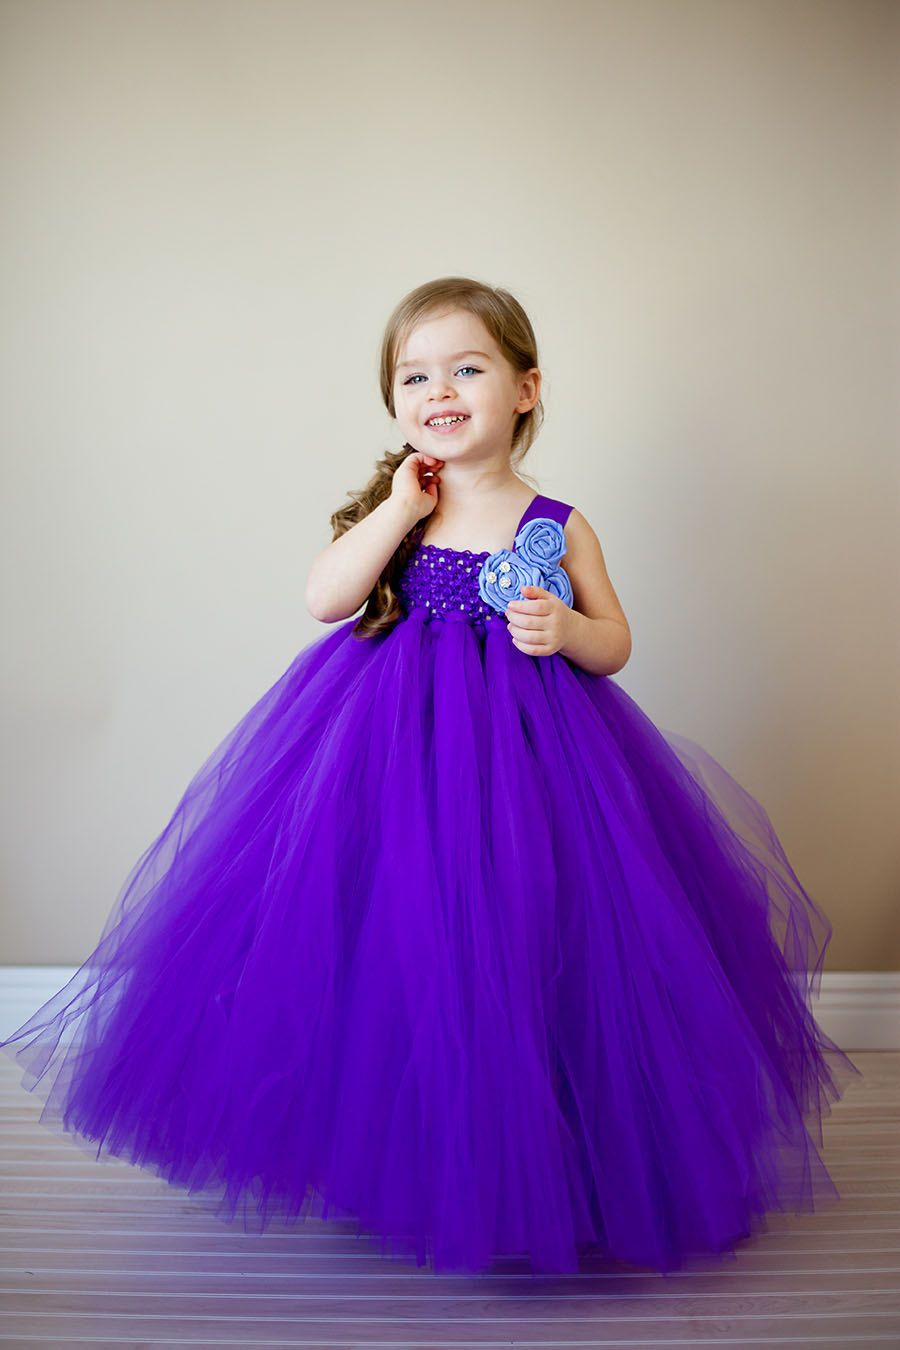 Flower girl tutu dress in purple couture with lavender